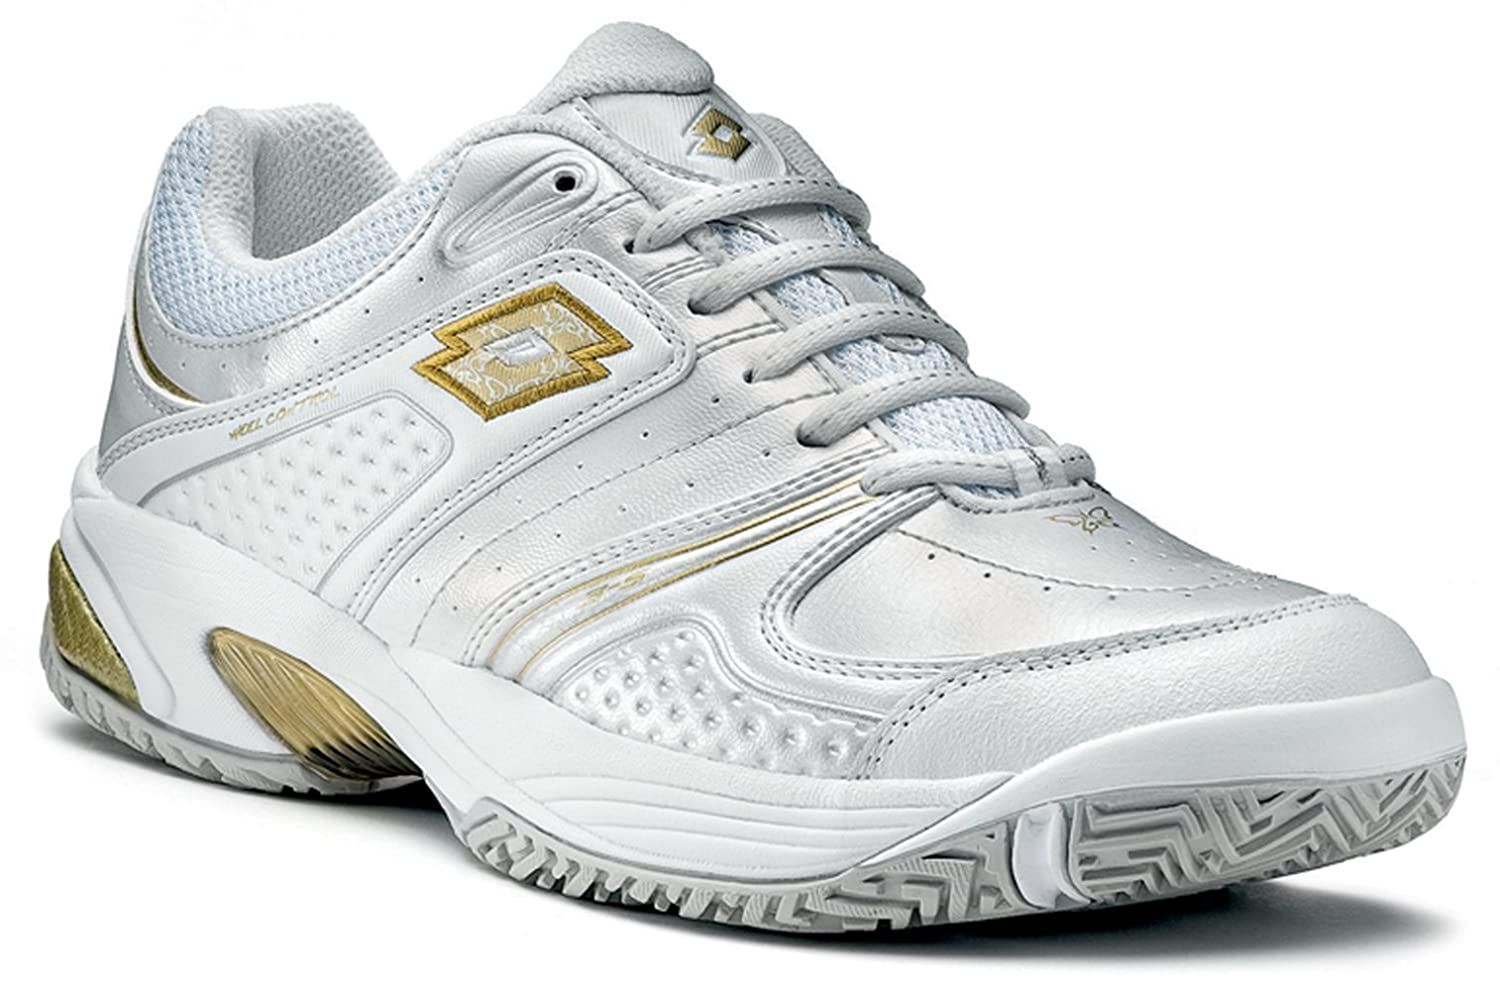 Lotto Tennisschuh Venusya Damen Gr. Gr. Gr. 42 (EU) ice Weiß metall Gold 1471fe